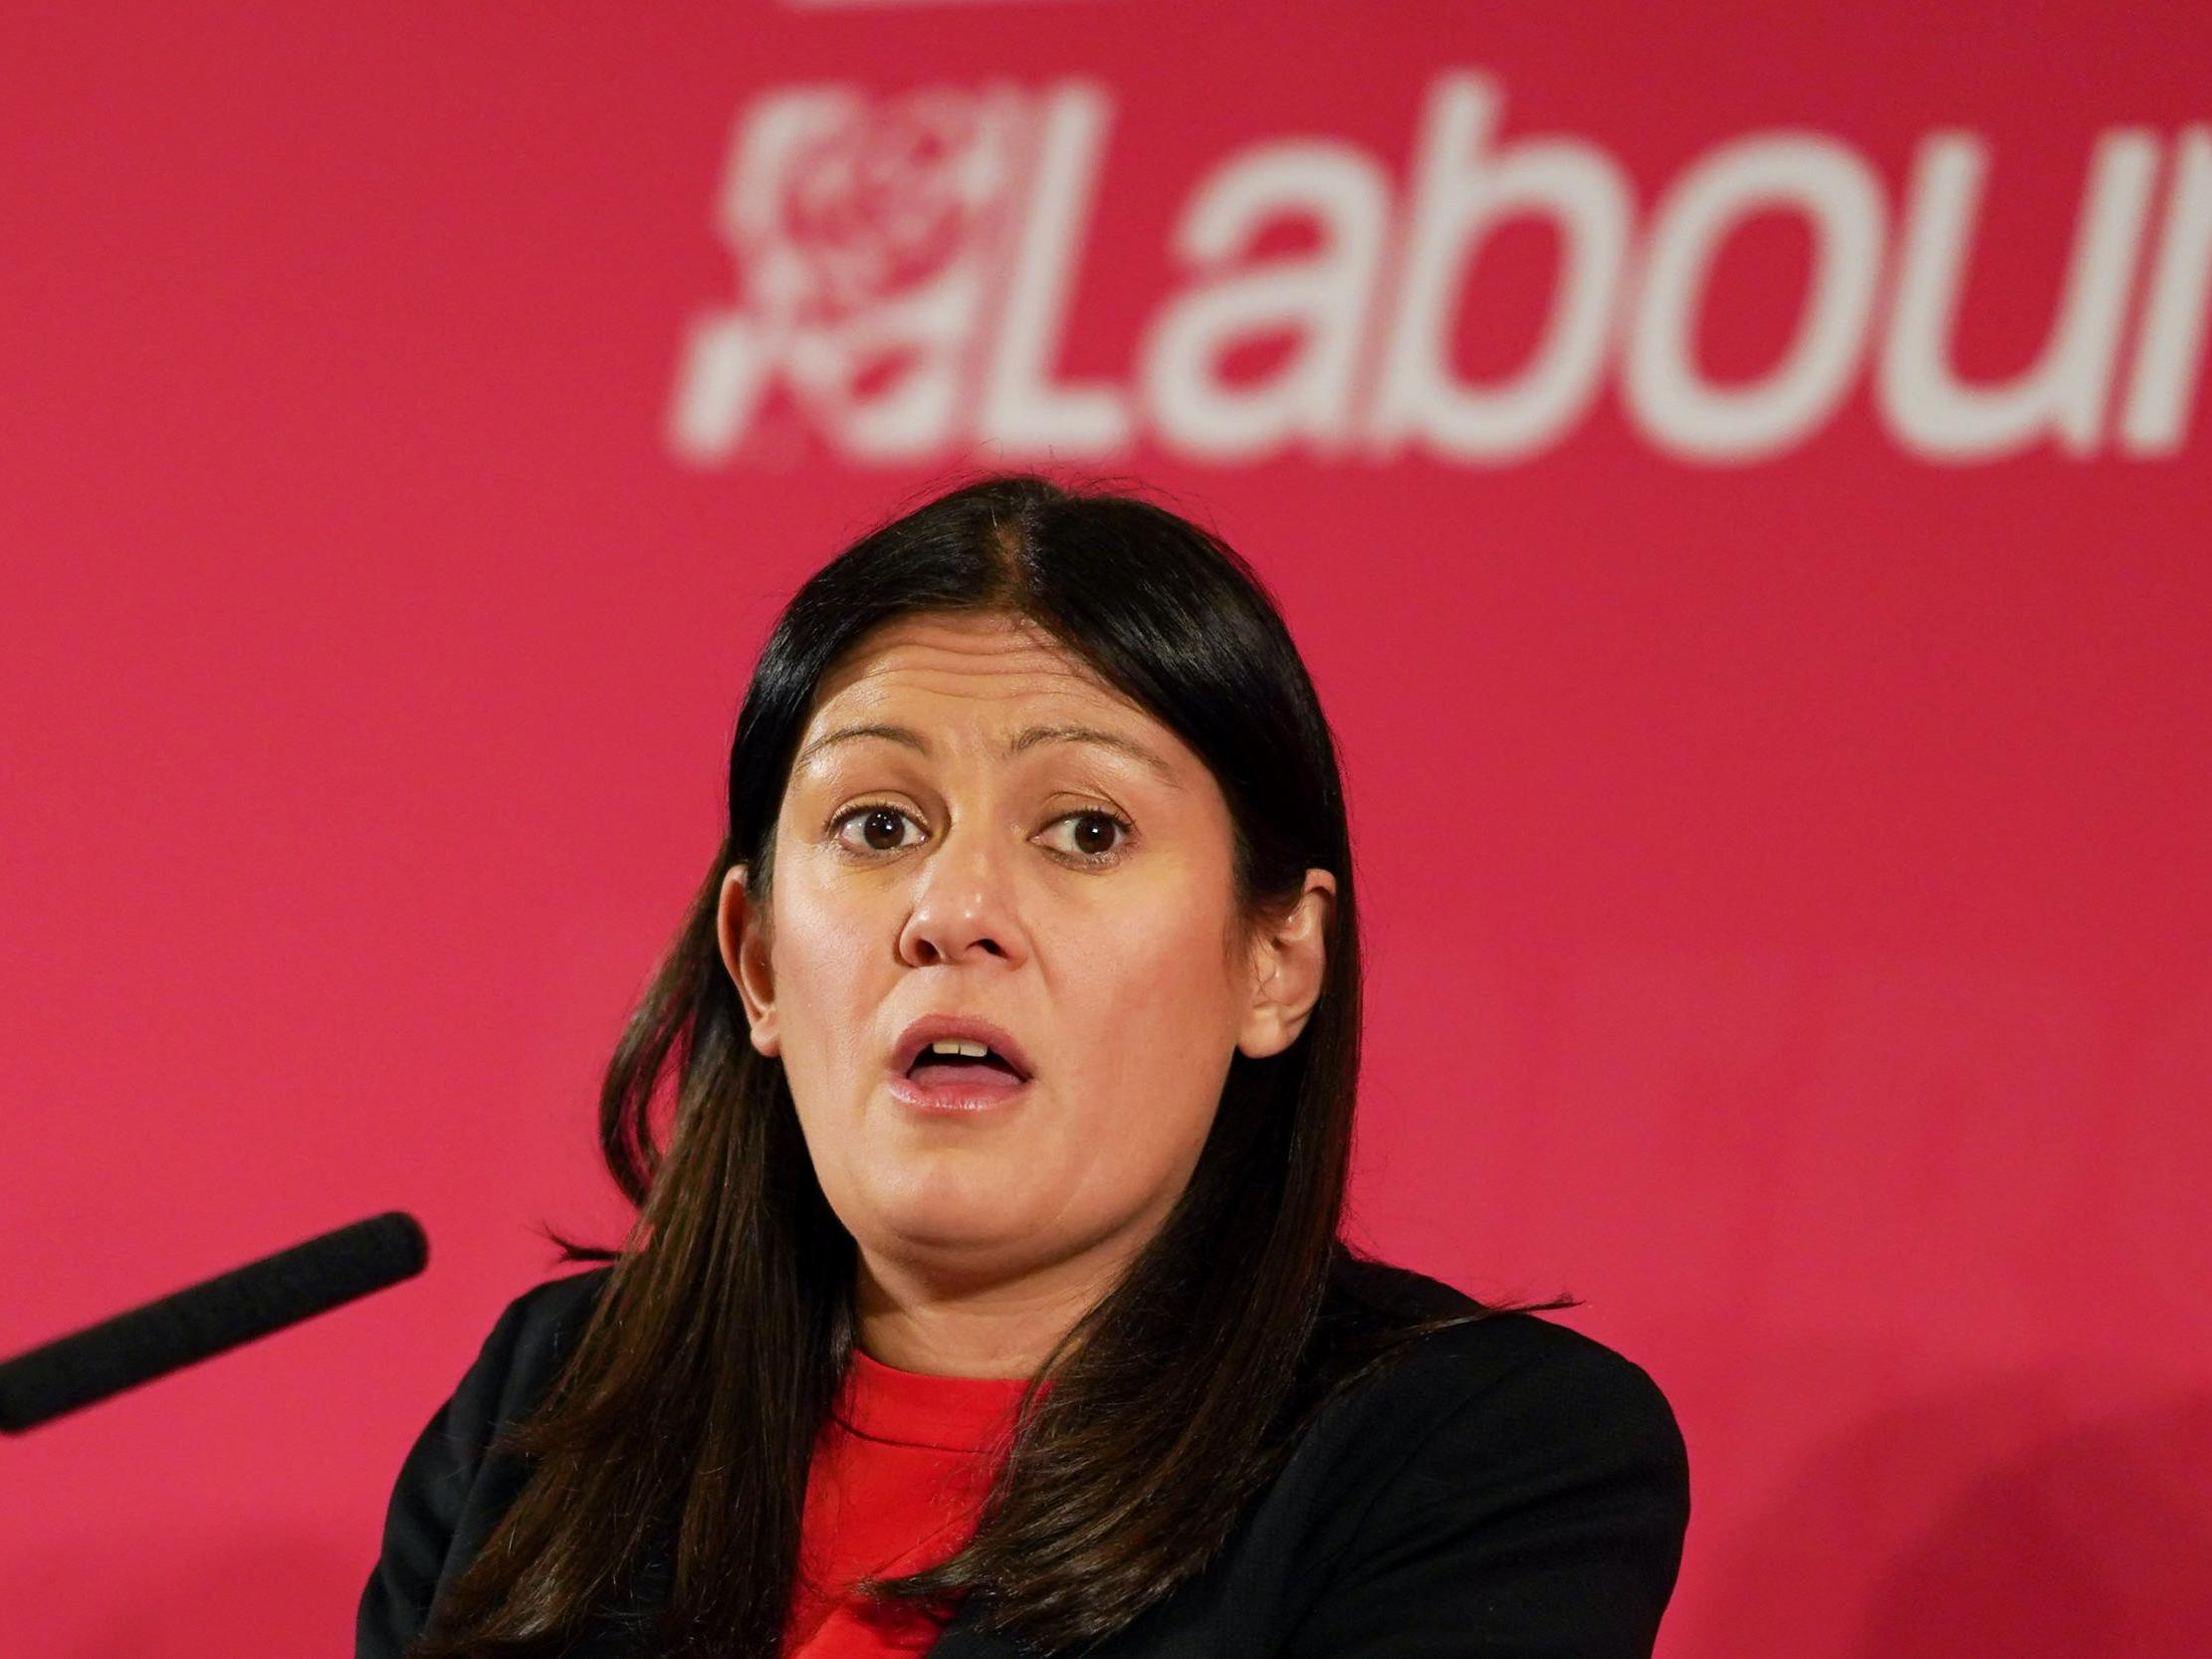 Opinion: Lisa Nandy's chances of winning the Labour leadership just improved tremendously